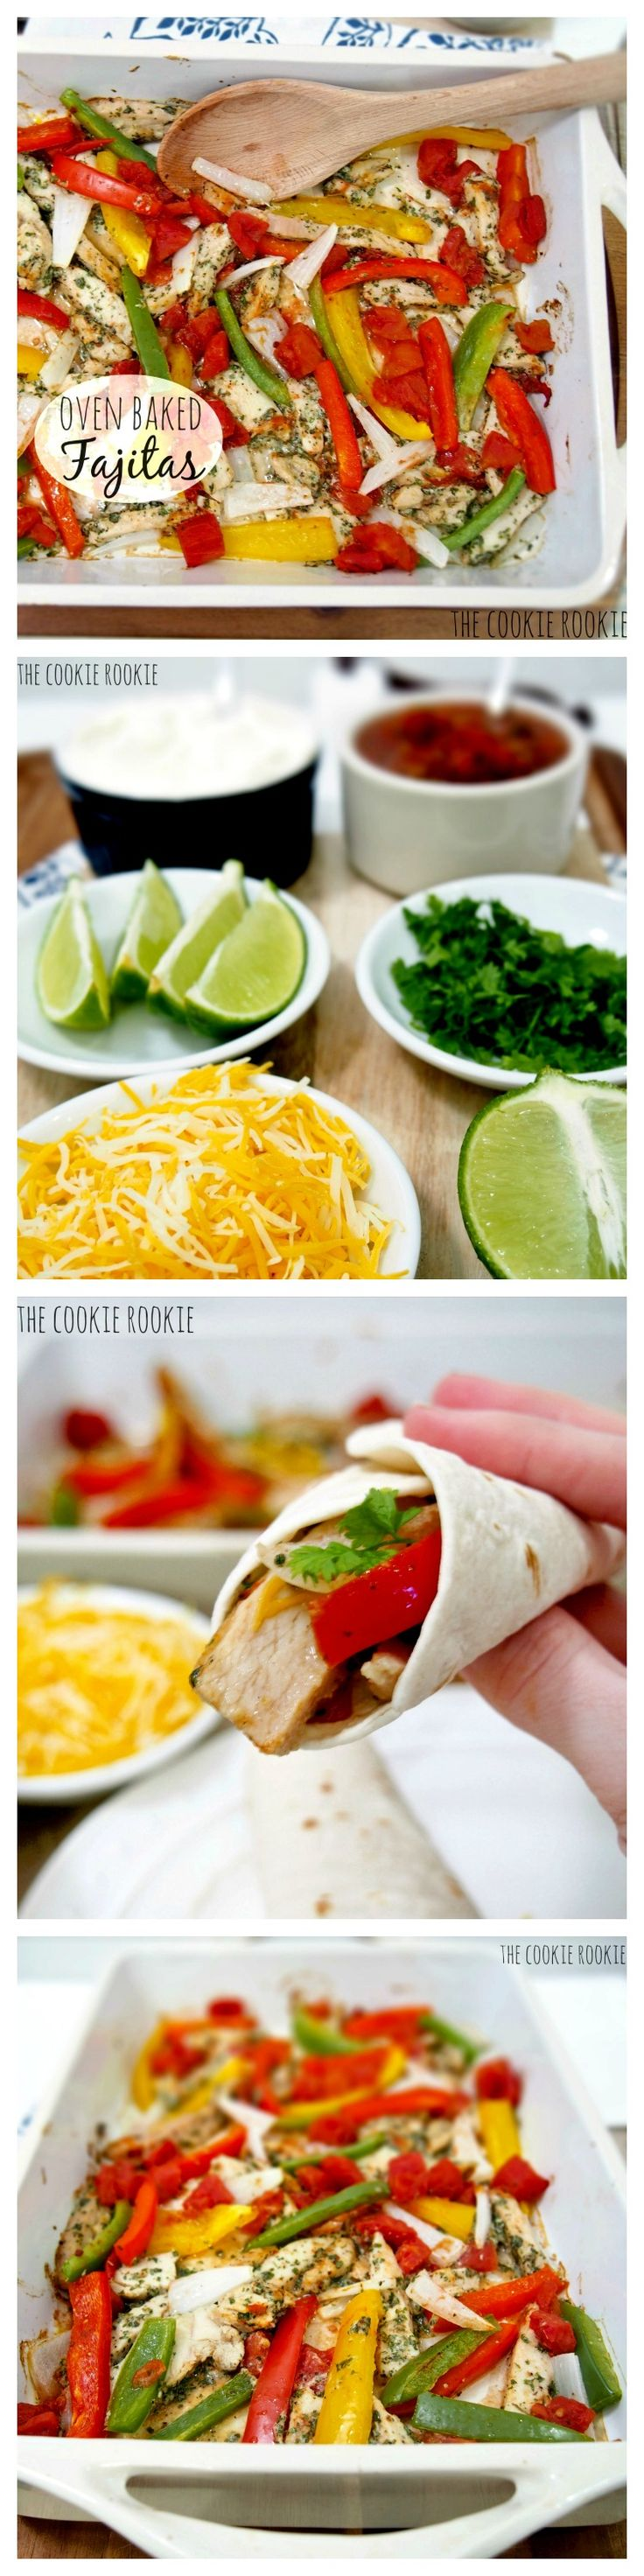 how to cook chicken fajitas in the oven